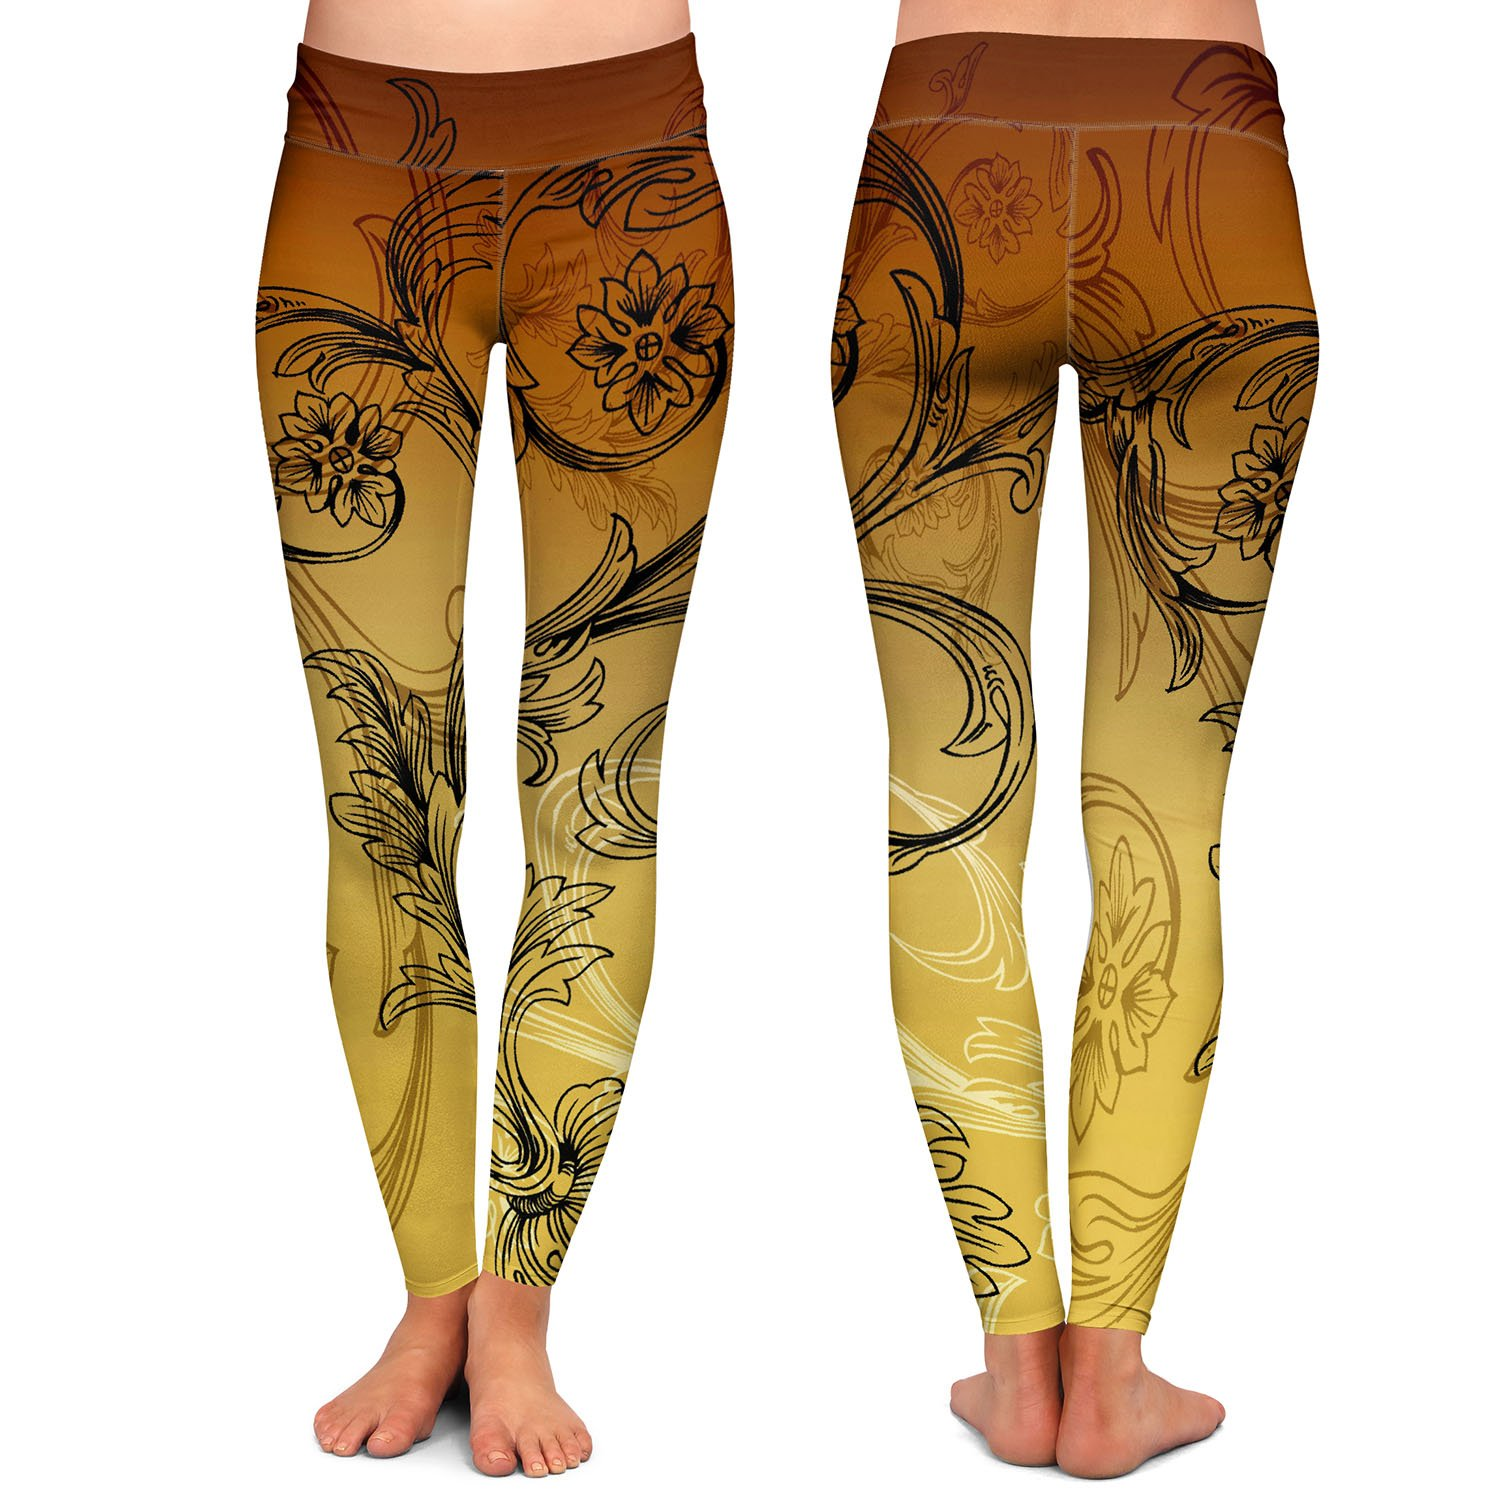 Athletic Yoga Leggings from DiaNoche Designs by Angelina Vick Coffee Flowers 3 Calypso